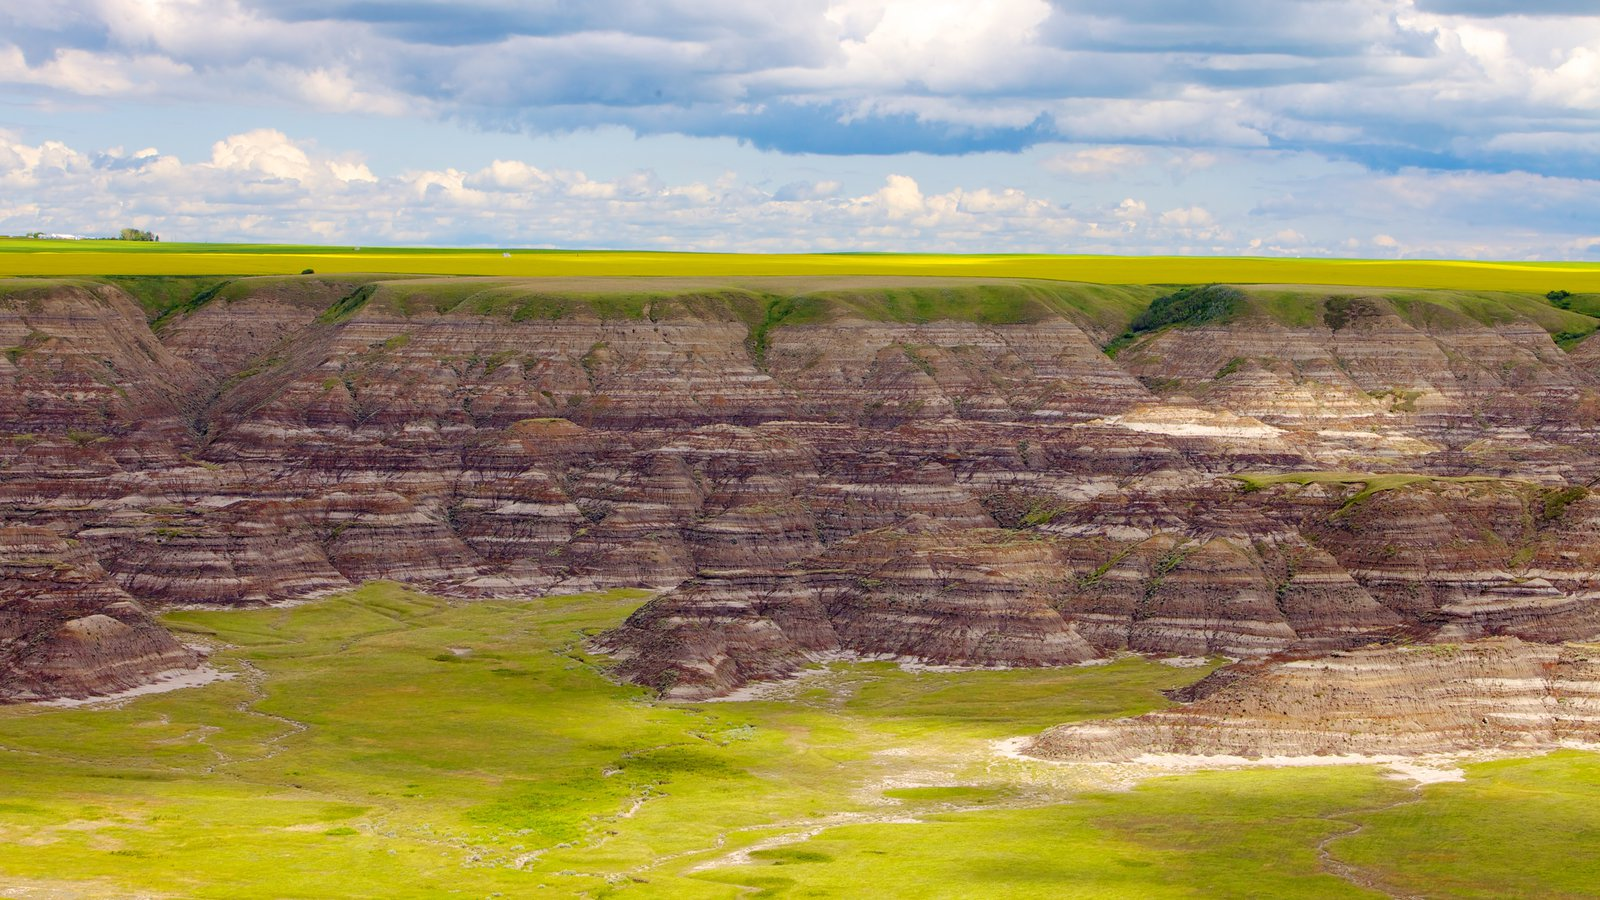 Drumheller which includes a gorge or canyon, landscape views and tranquil scenes